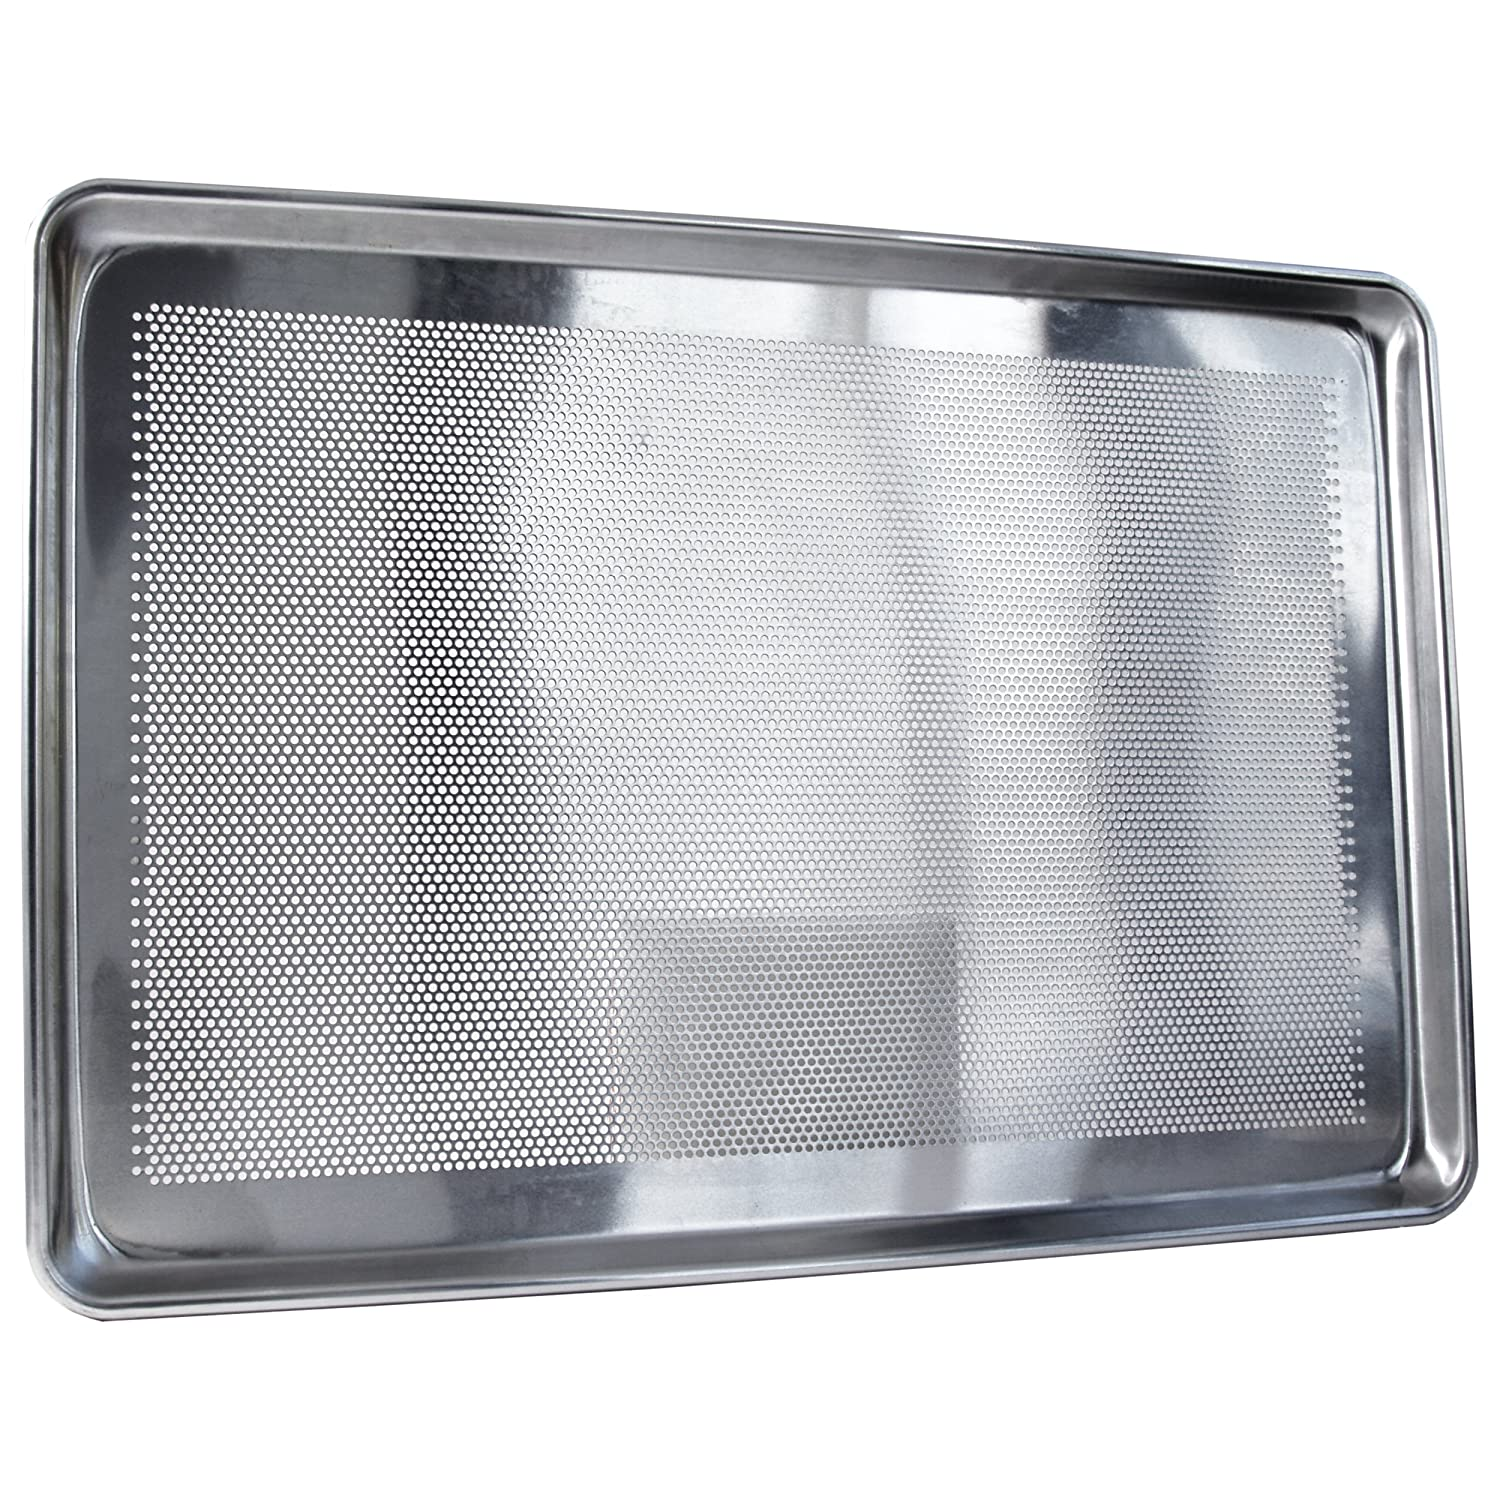 Focus Foodservice Commercial Bakeware 18ゲージアルミPerforated Bottom Fullサイズシートパン B00188CACE